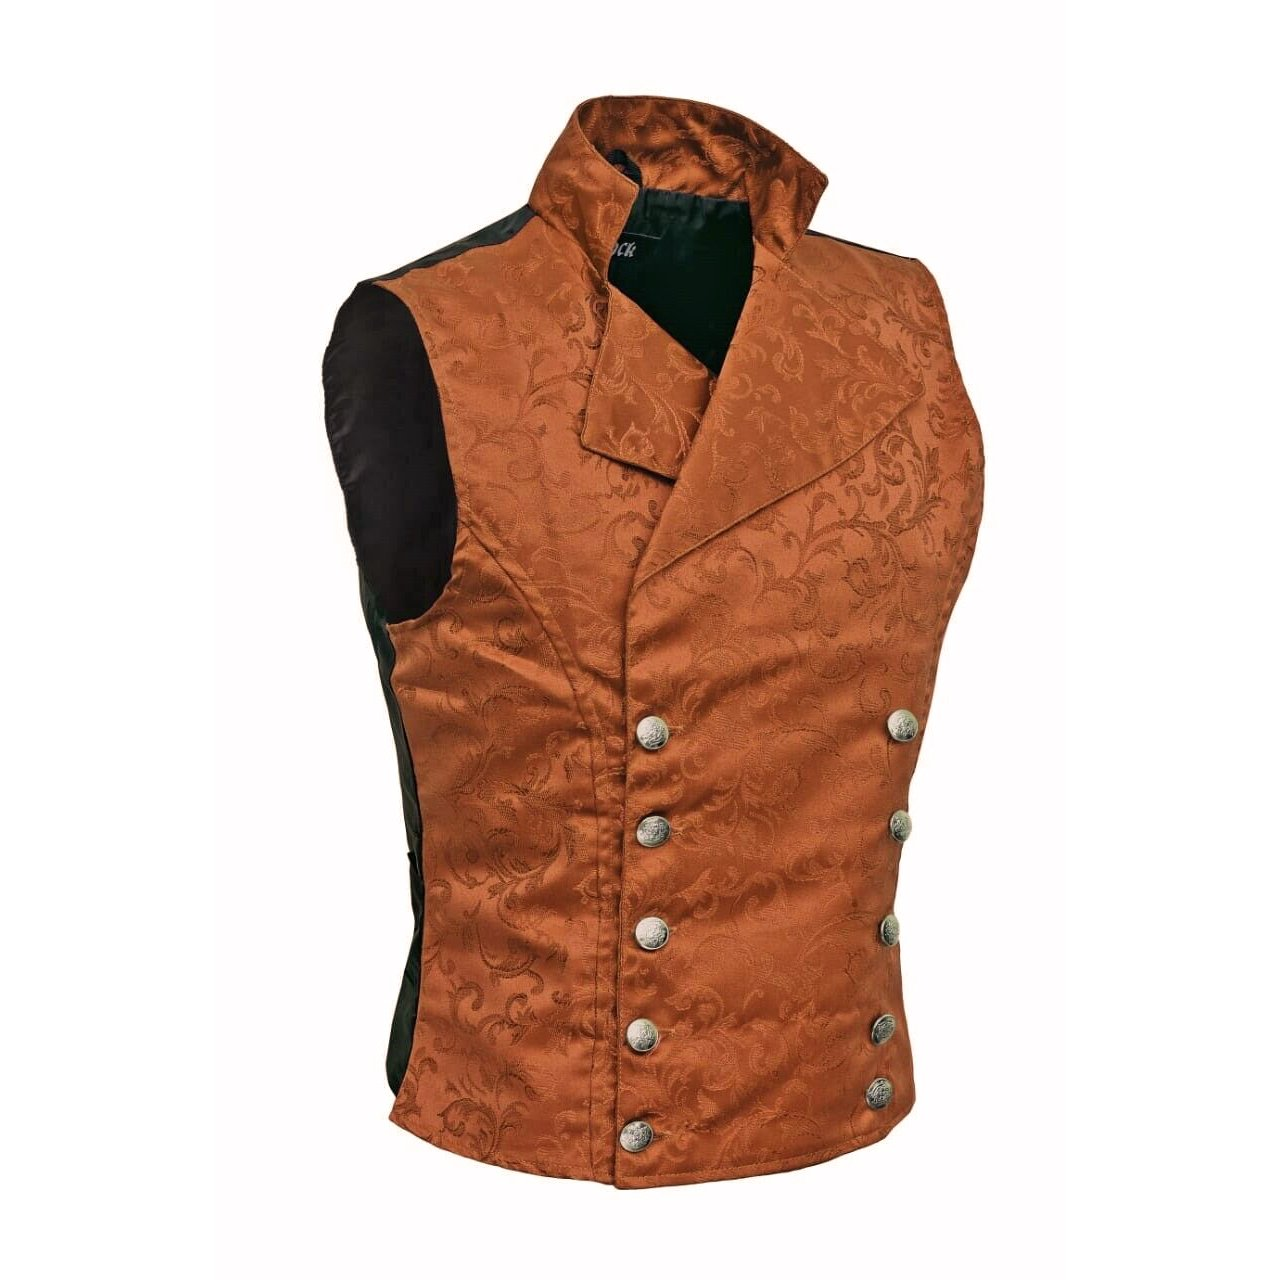 SCARLET DARKNESS Womens Victorian Waistcoat Double-Breasted Casual Dressy Vests